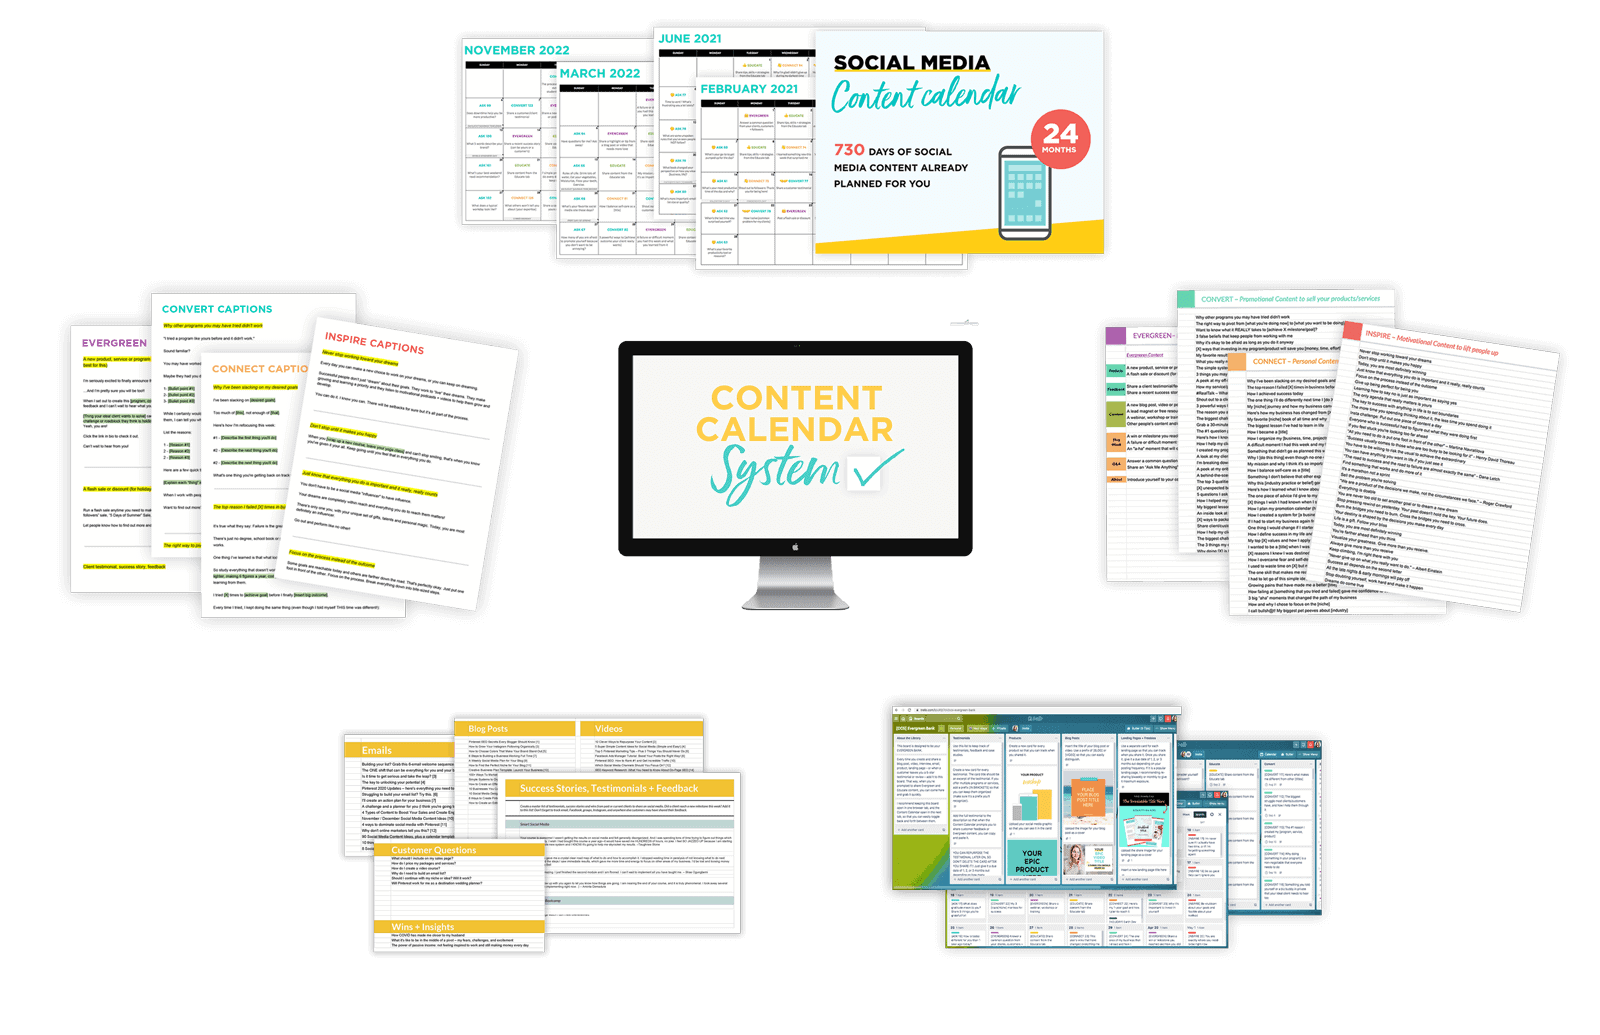 Content Calendar System by ConversionMinded